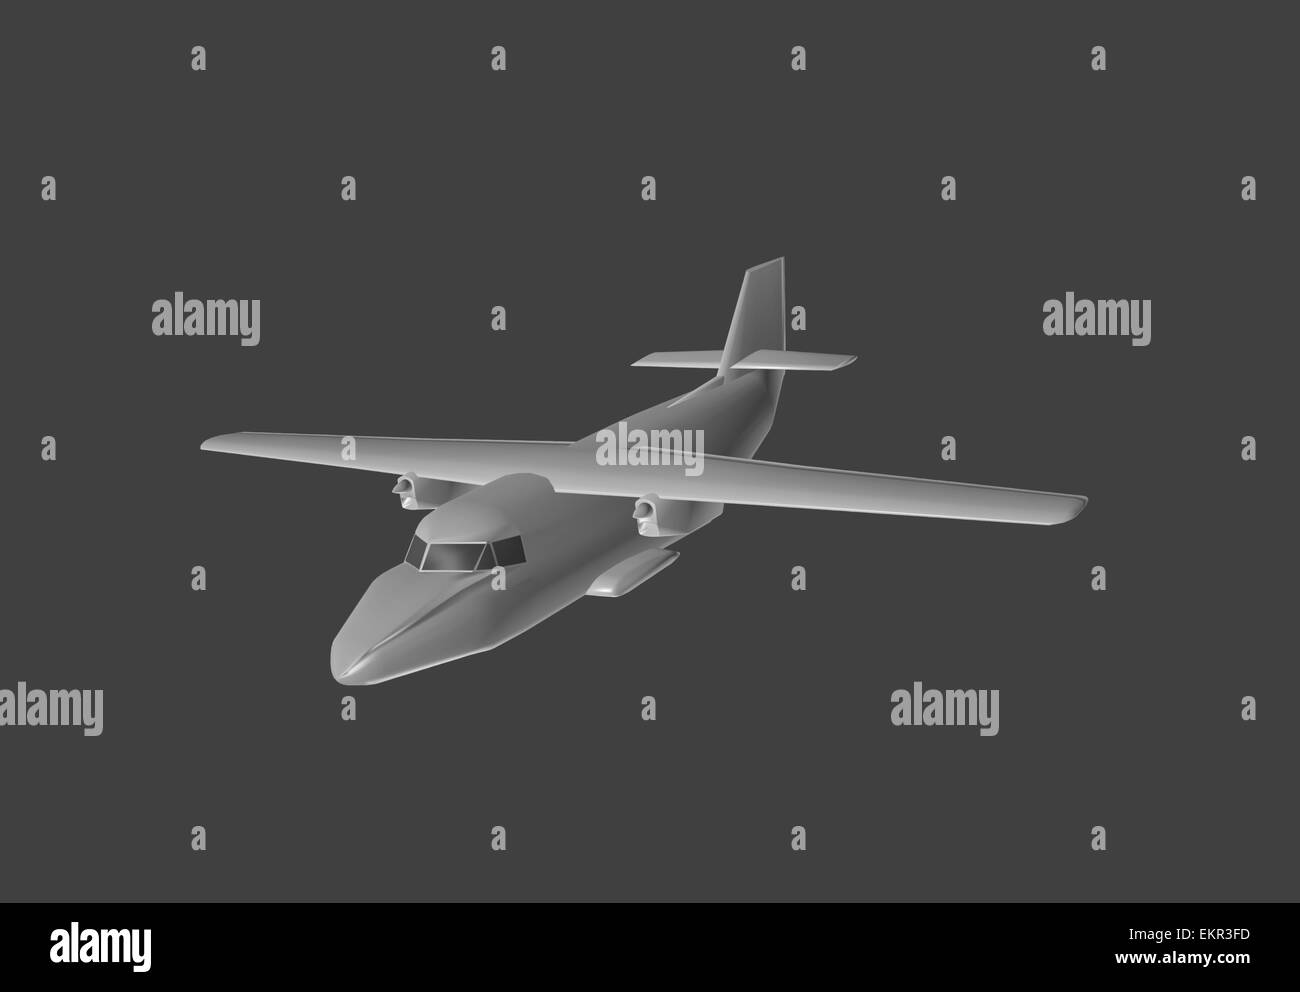 airplane, 3d, model, plane, aircraft, aeroplane, isolated, aviation, air, flight, transportation, black, technology, - Stock Image